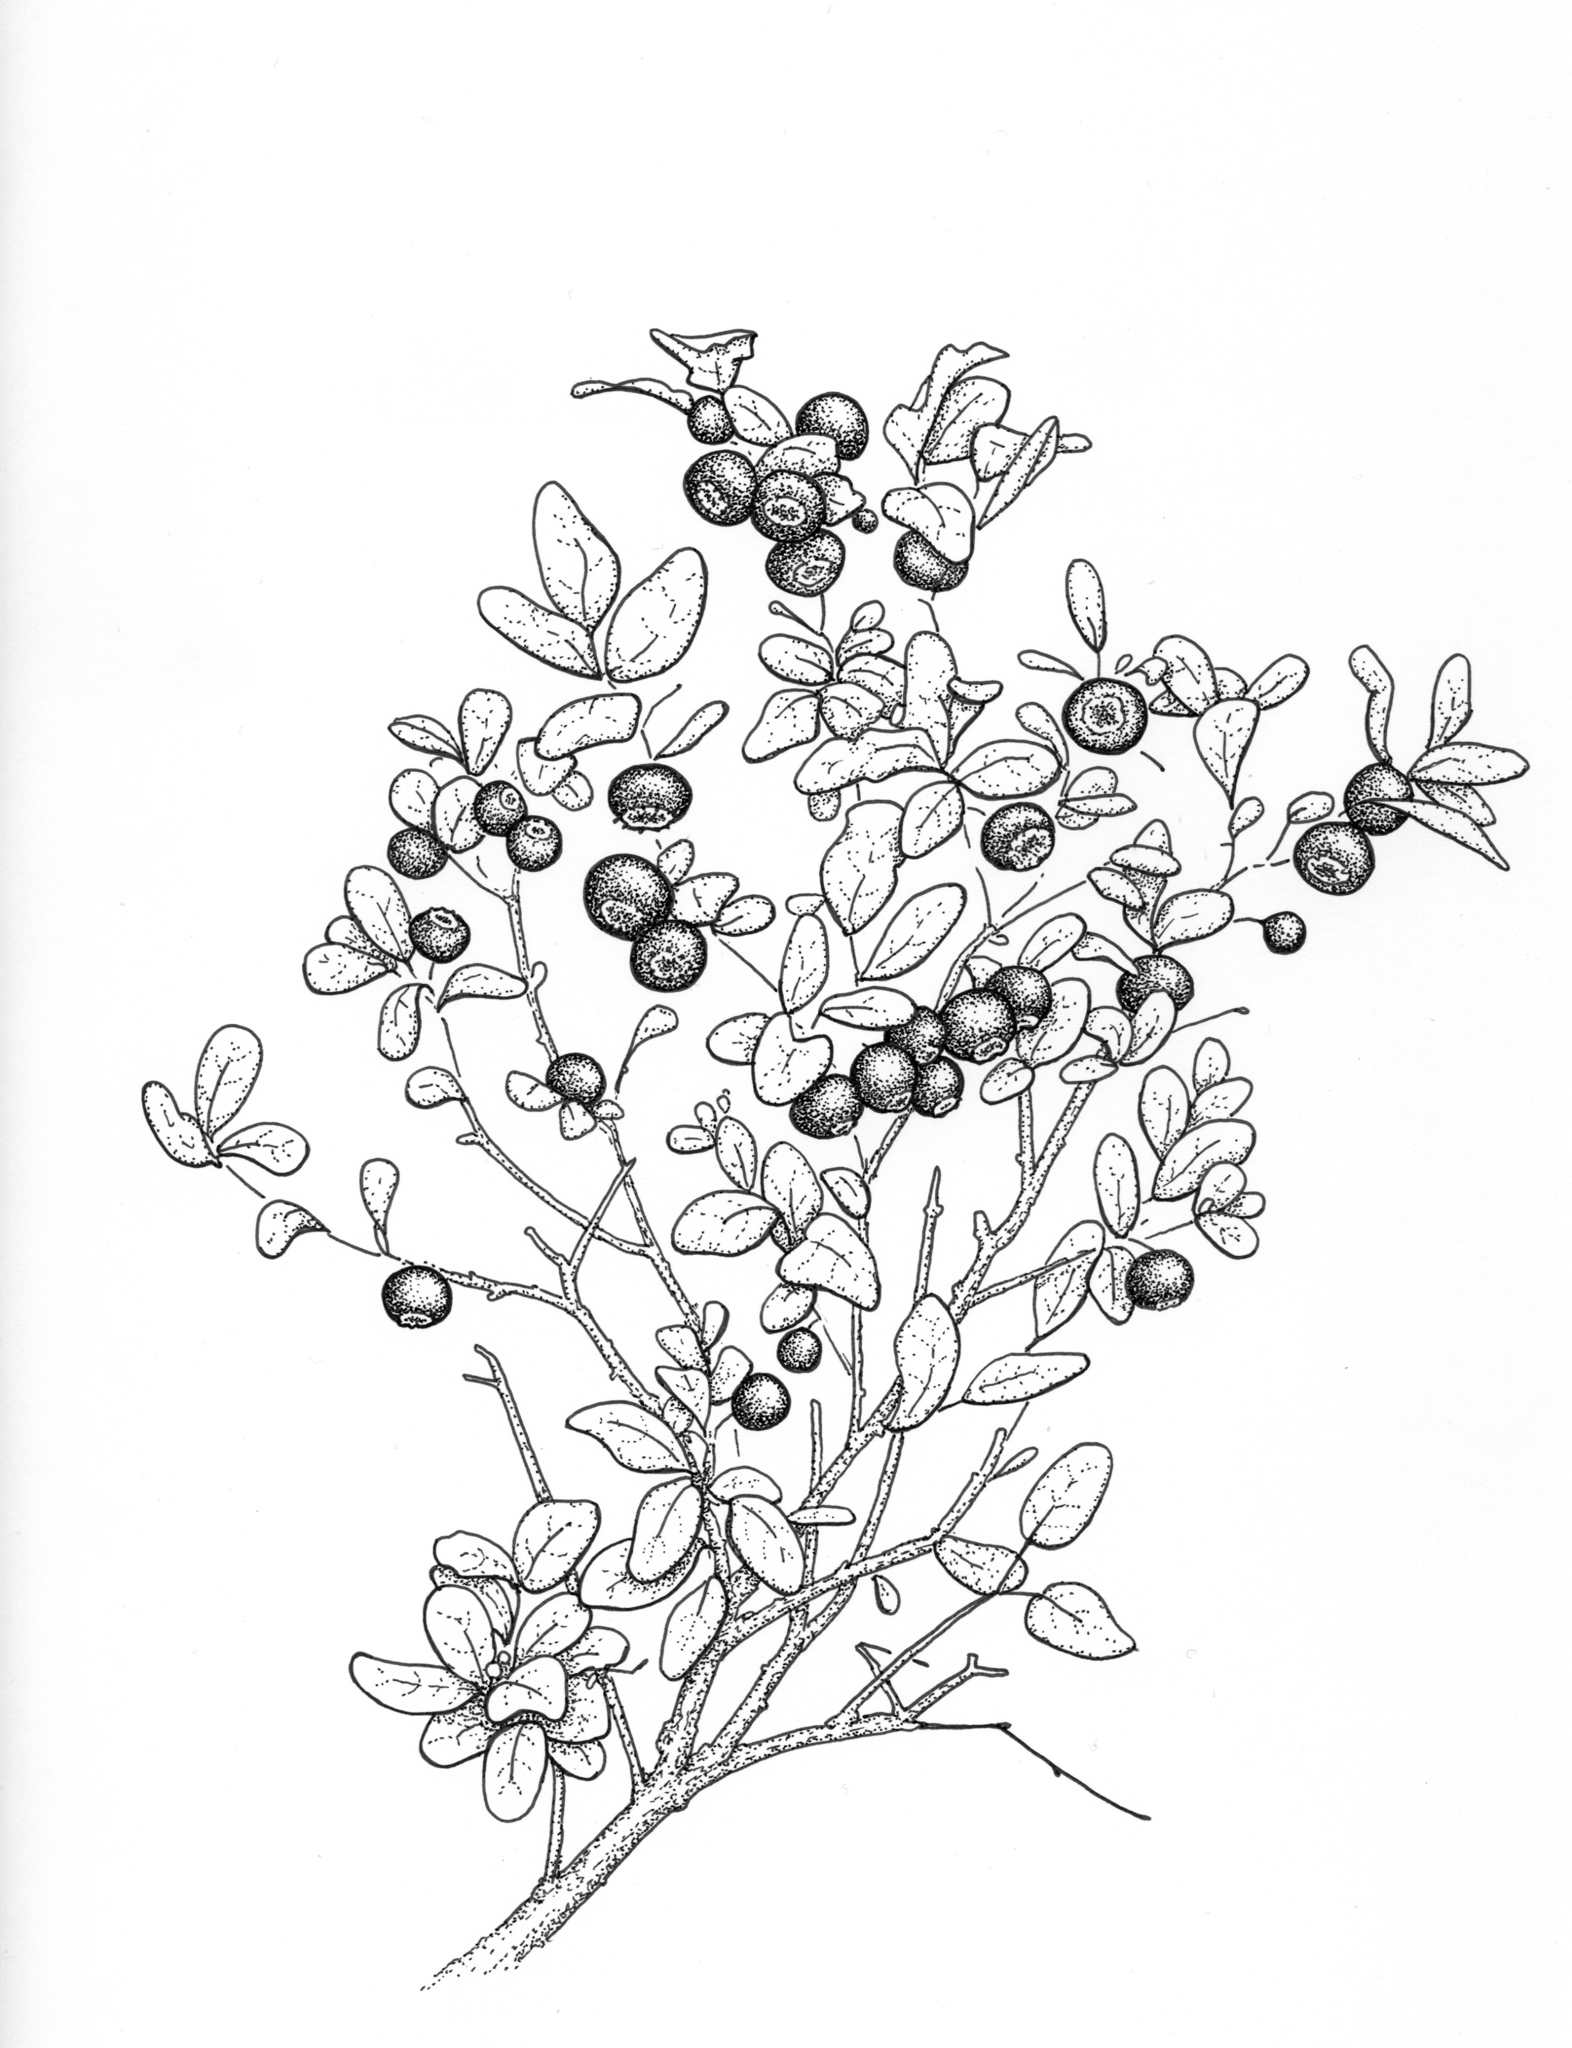 Wild blueberry drawing, huckleberry, oval-leaf blueberry, high bush blueberry, edible berries, foraging, Alaskan, alaska